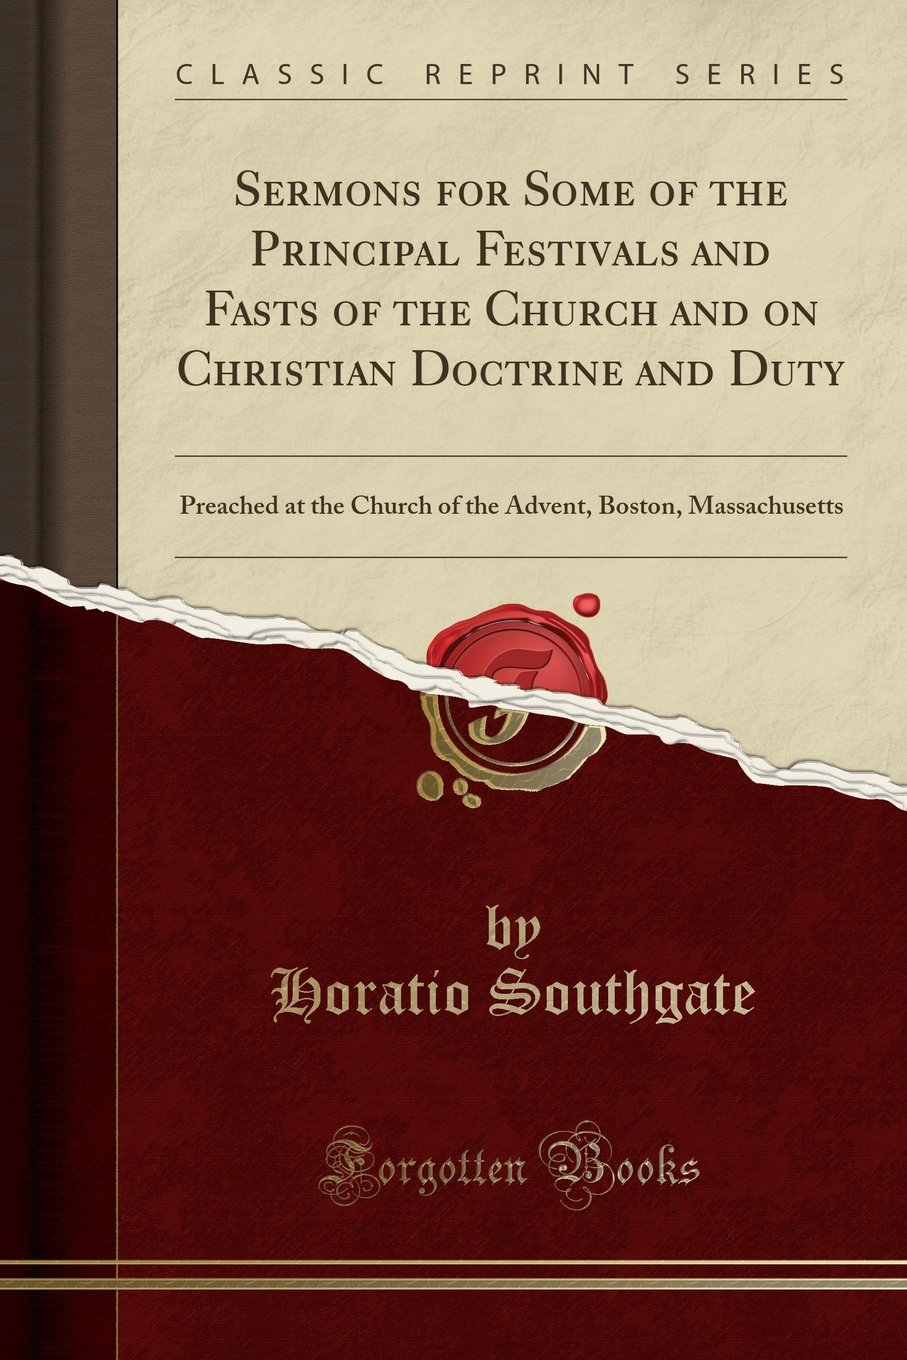 Sermons for Some of the Principal Festivals and Fasts of the Church and on Christian Doctrine and Duty: Preached at the Church of the Advent, Boston, Massachusetts (Classic Reprint) pdf